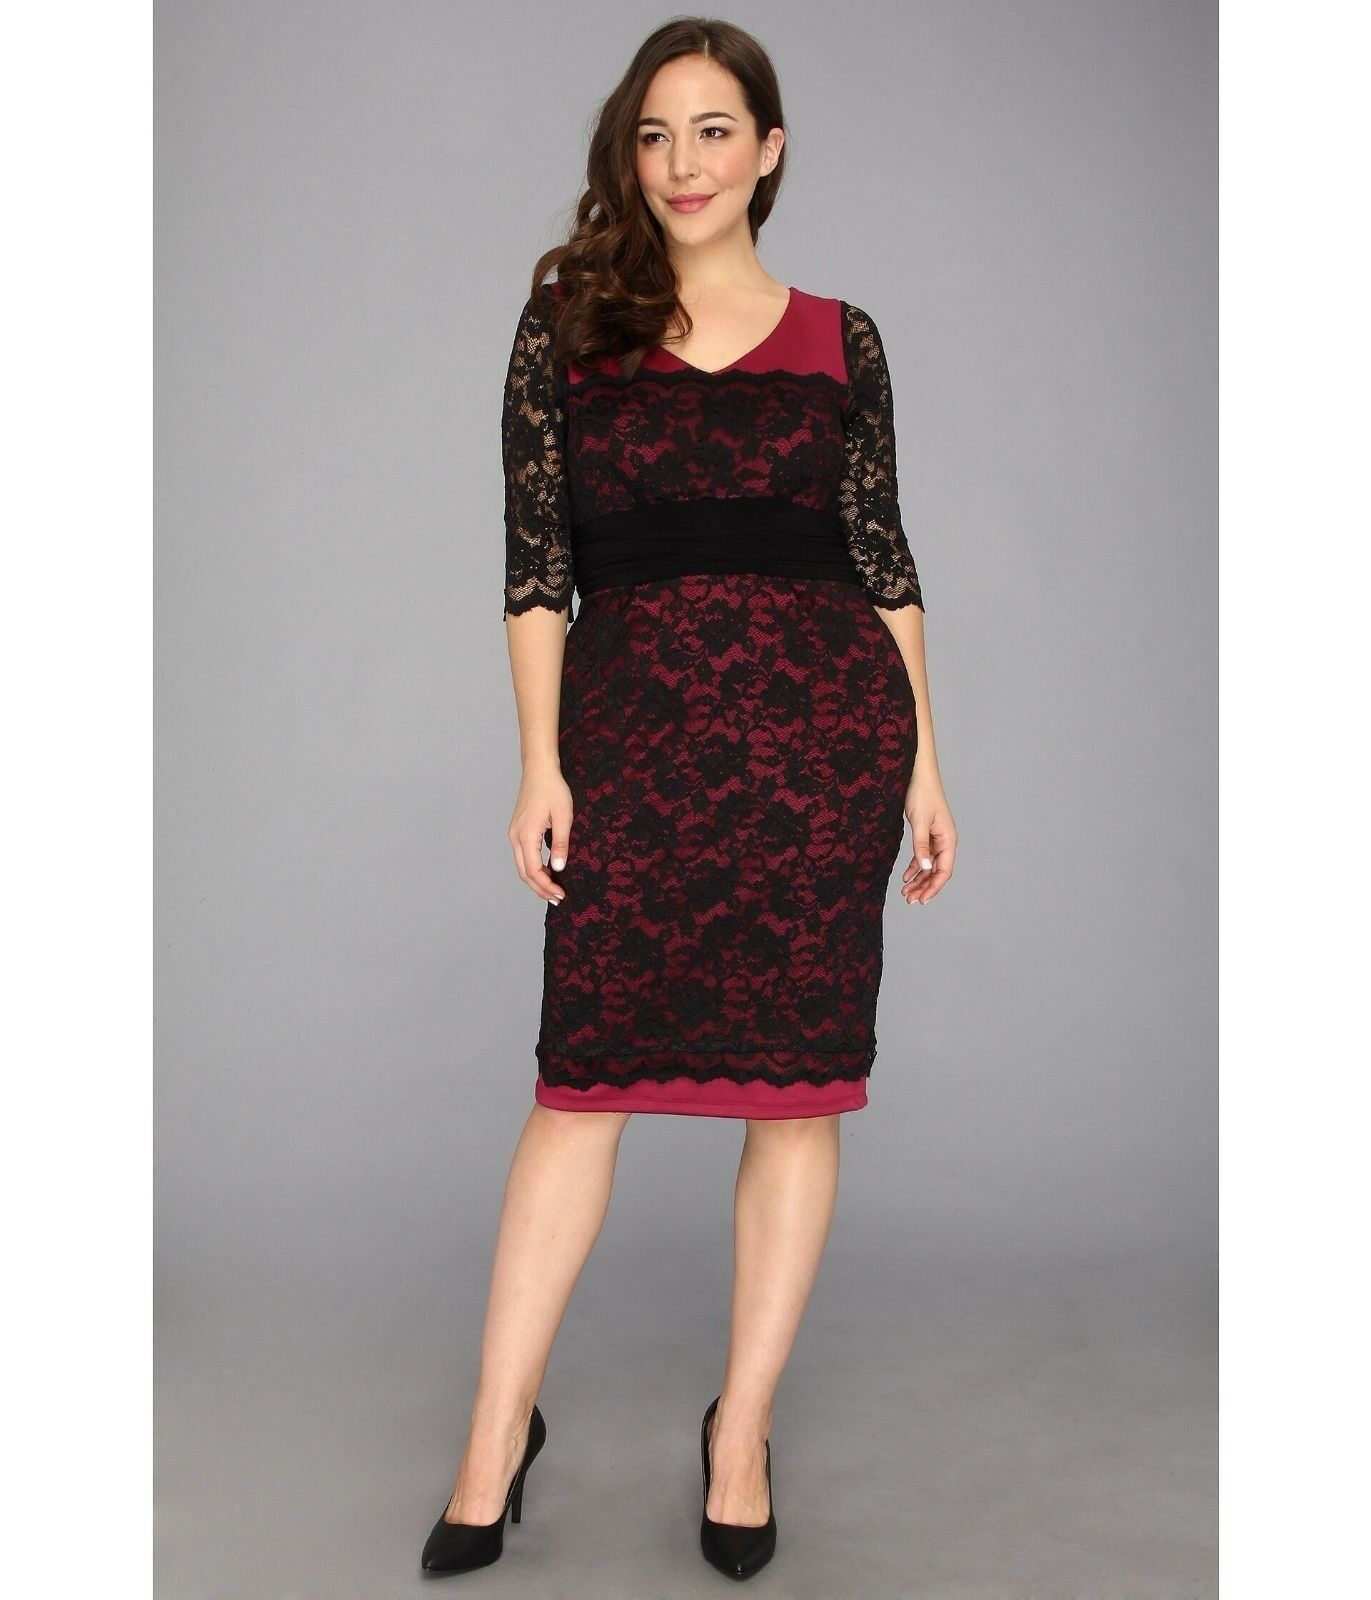 NWT Authentic Kiyonna RSVP Lace Dress in Berry, 2X